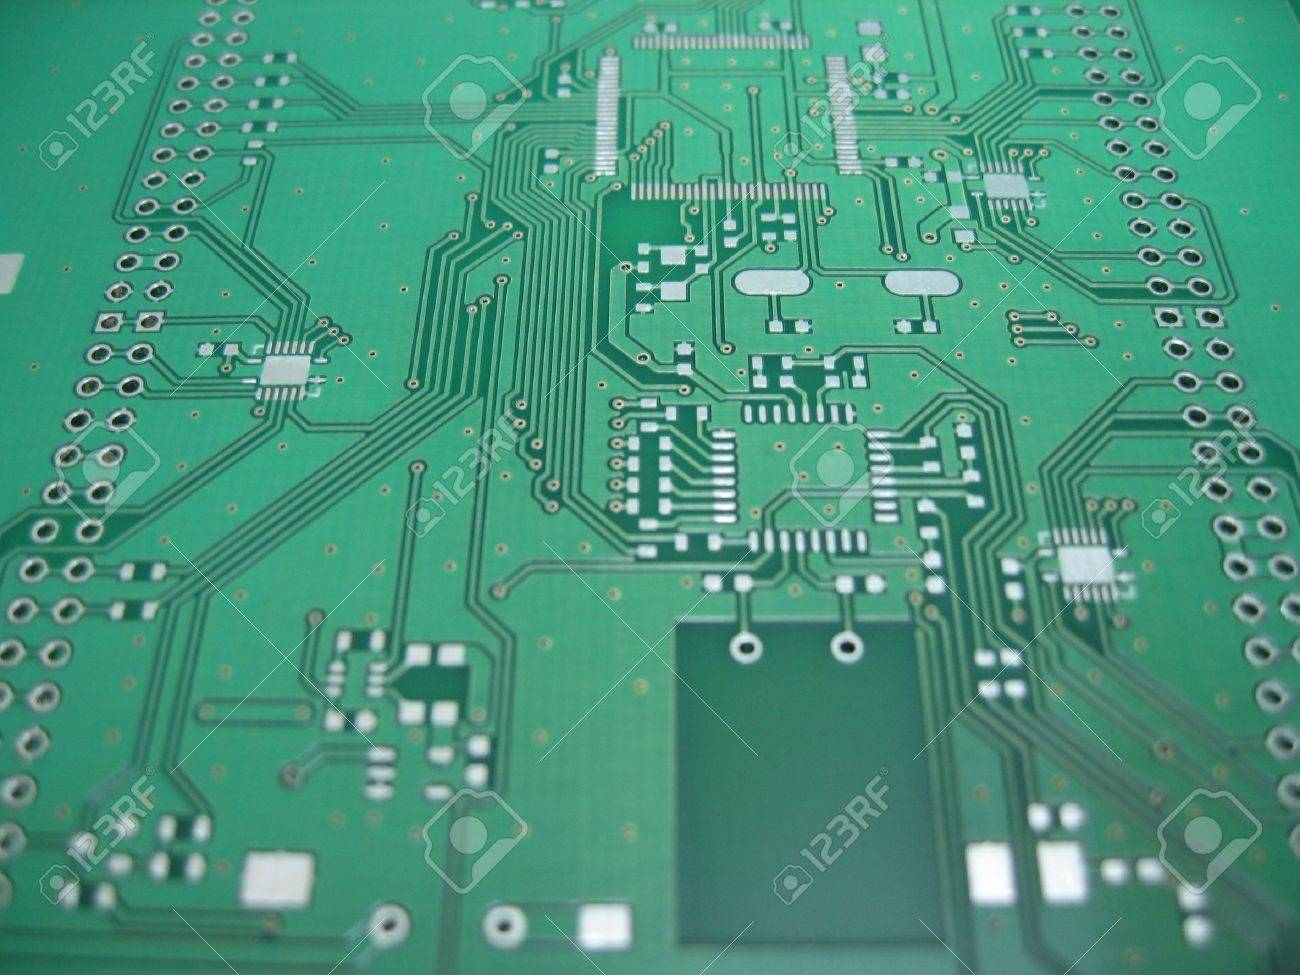 green printec circuit board pcb without any components soldered rh 123rf com